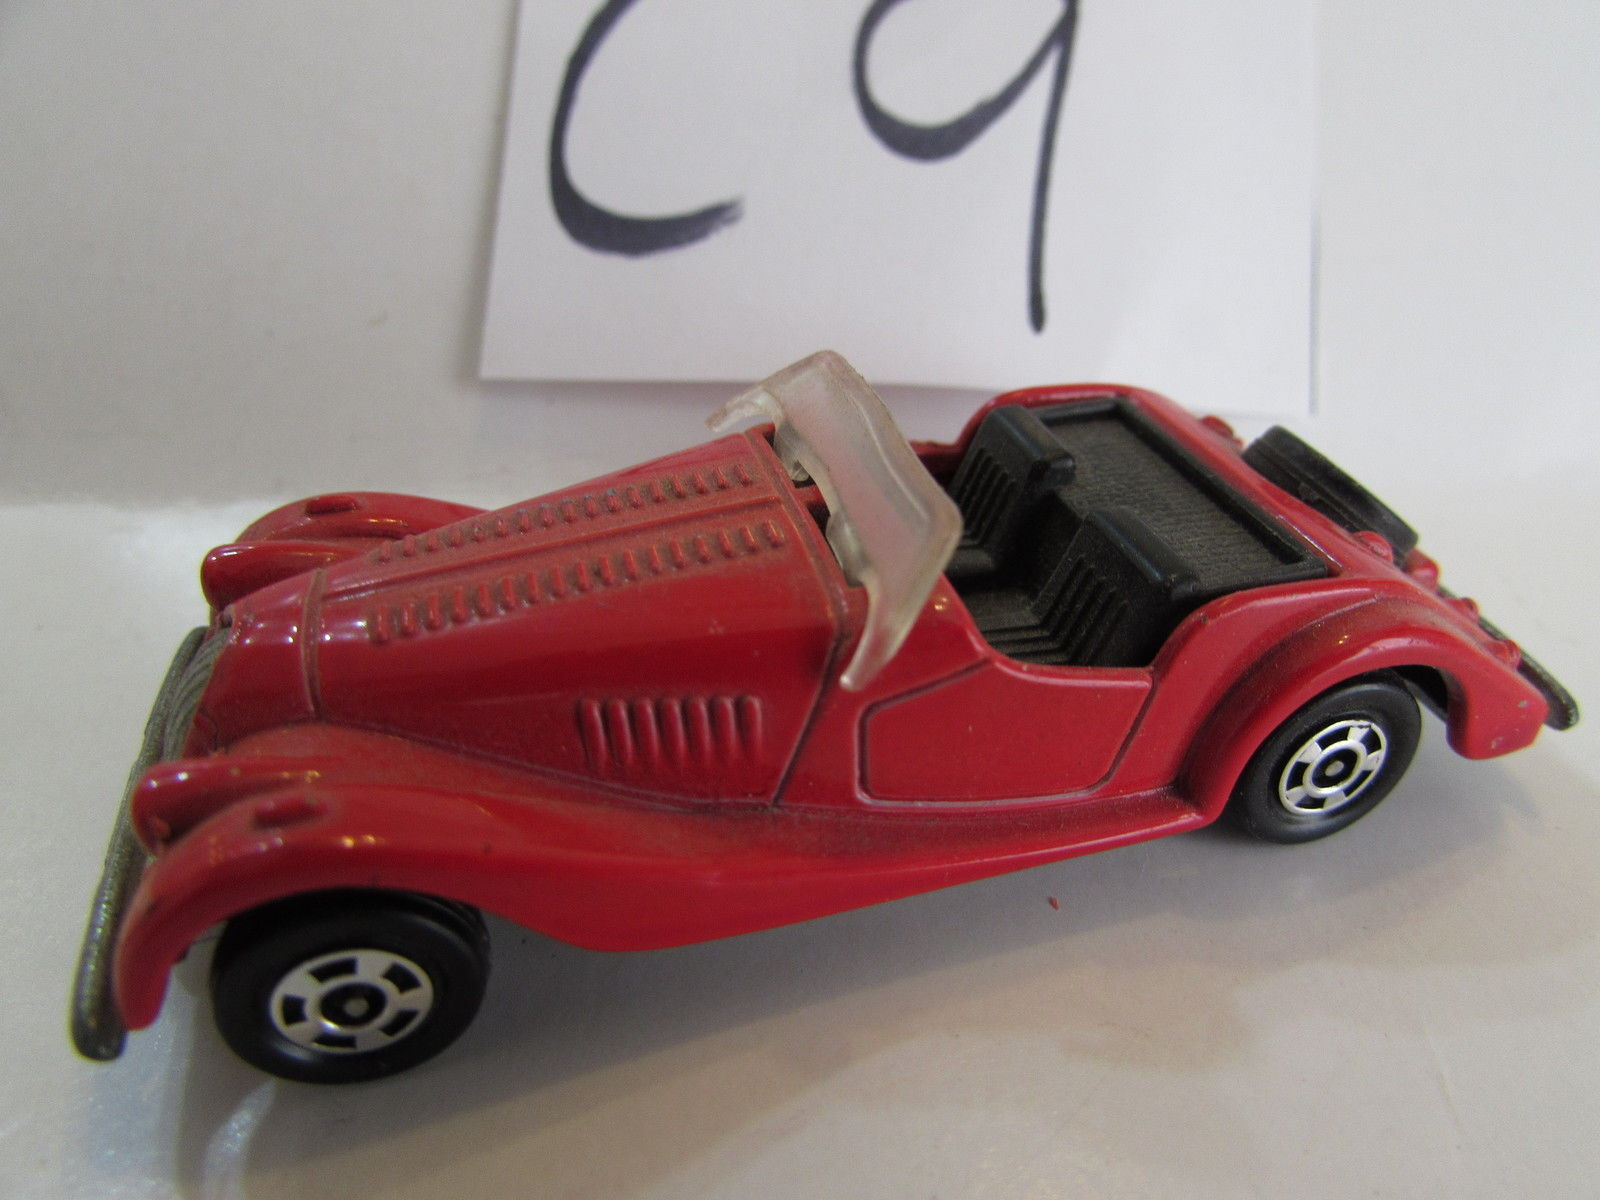 1977 TOMICA MORGAN PLUS 8 SCALE 1:57 MADE IN JAPAN - LOOSE E+